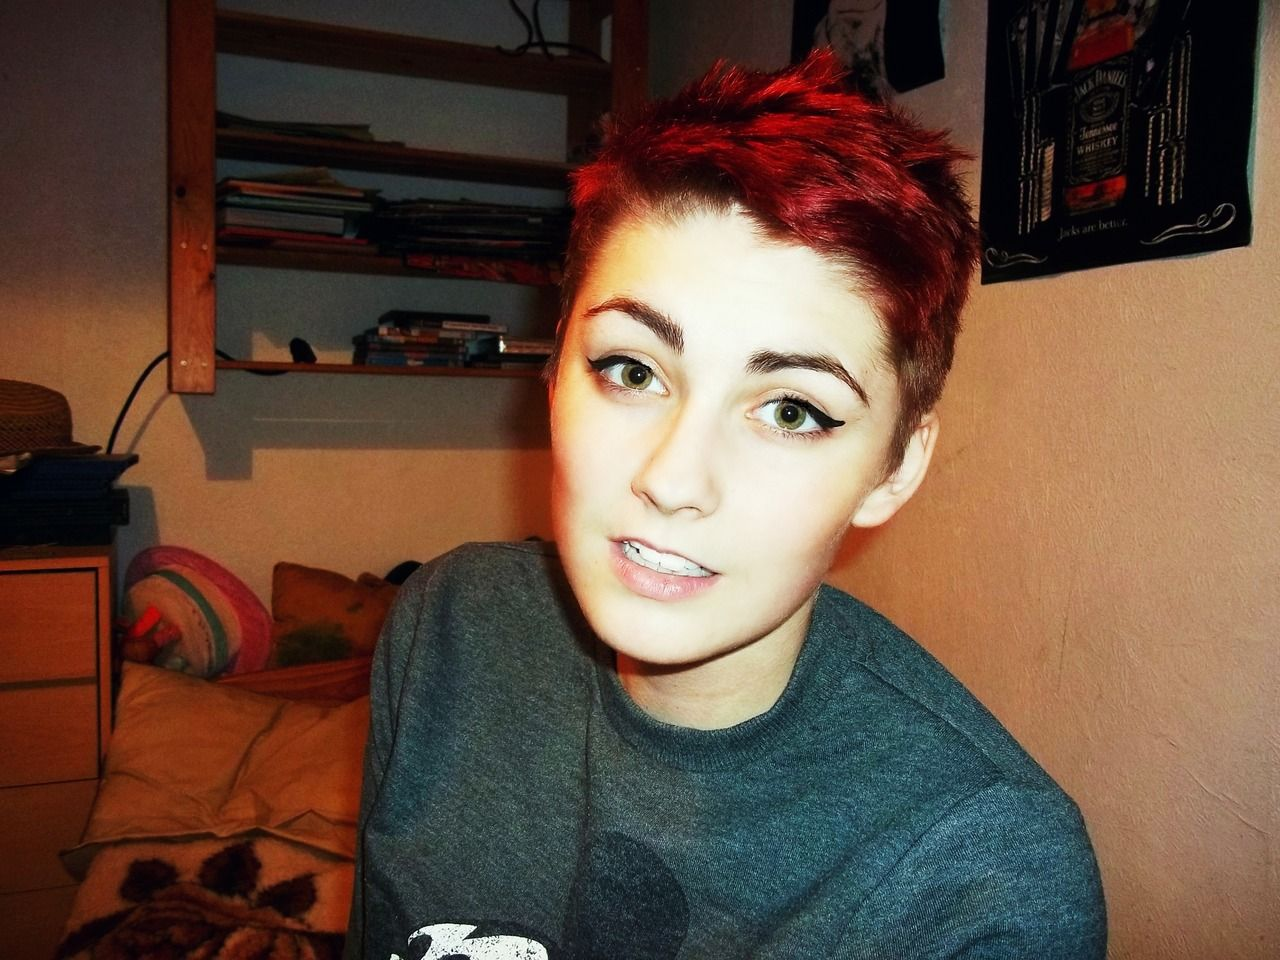 49 best girl buzzcuts images on pinterest | buzz cuts, hairstyles